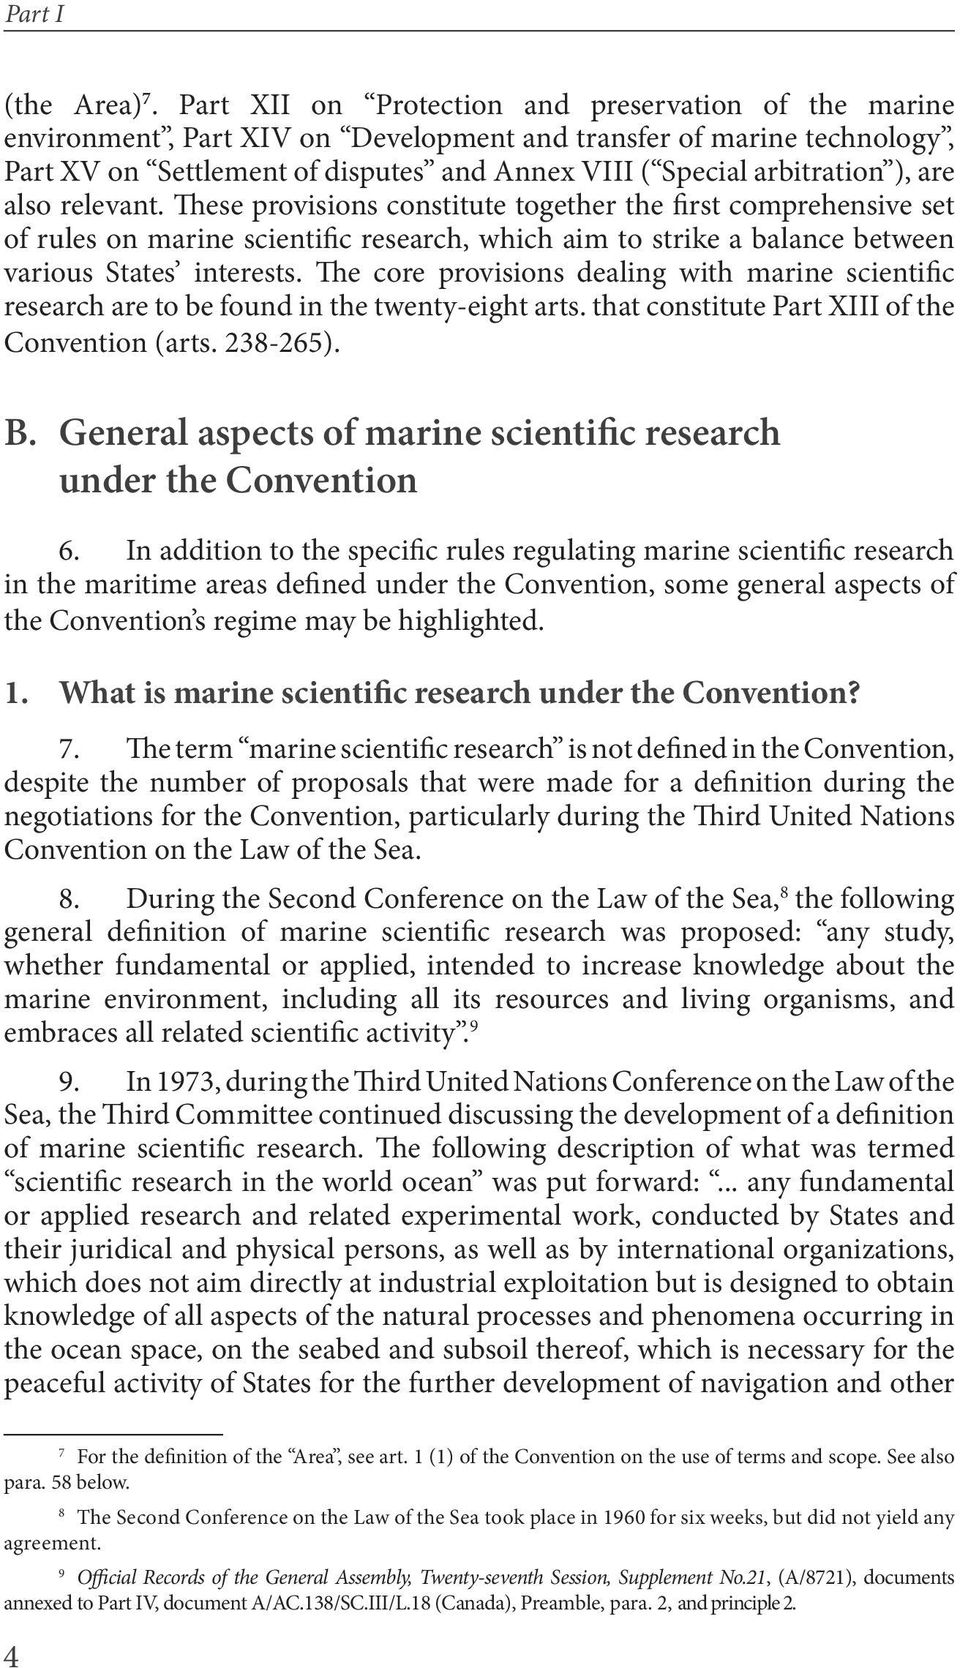 are also relevant. These provisions constitute together the first comprehensive set of rules on marine scientific research, which aim to strike a balance between various States interests.